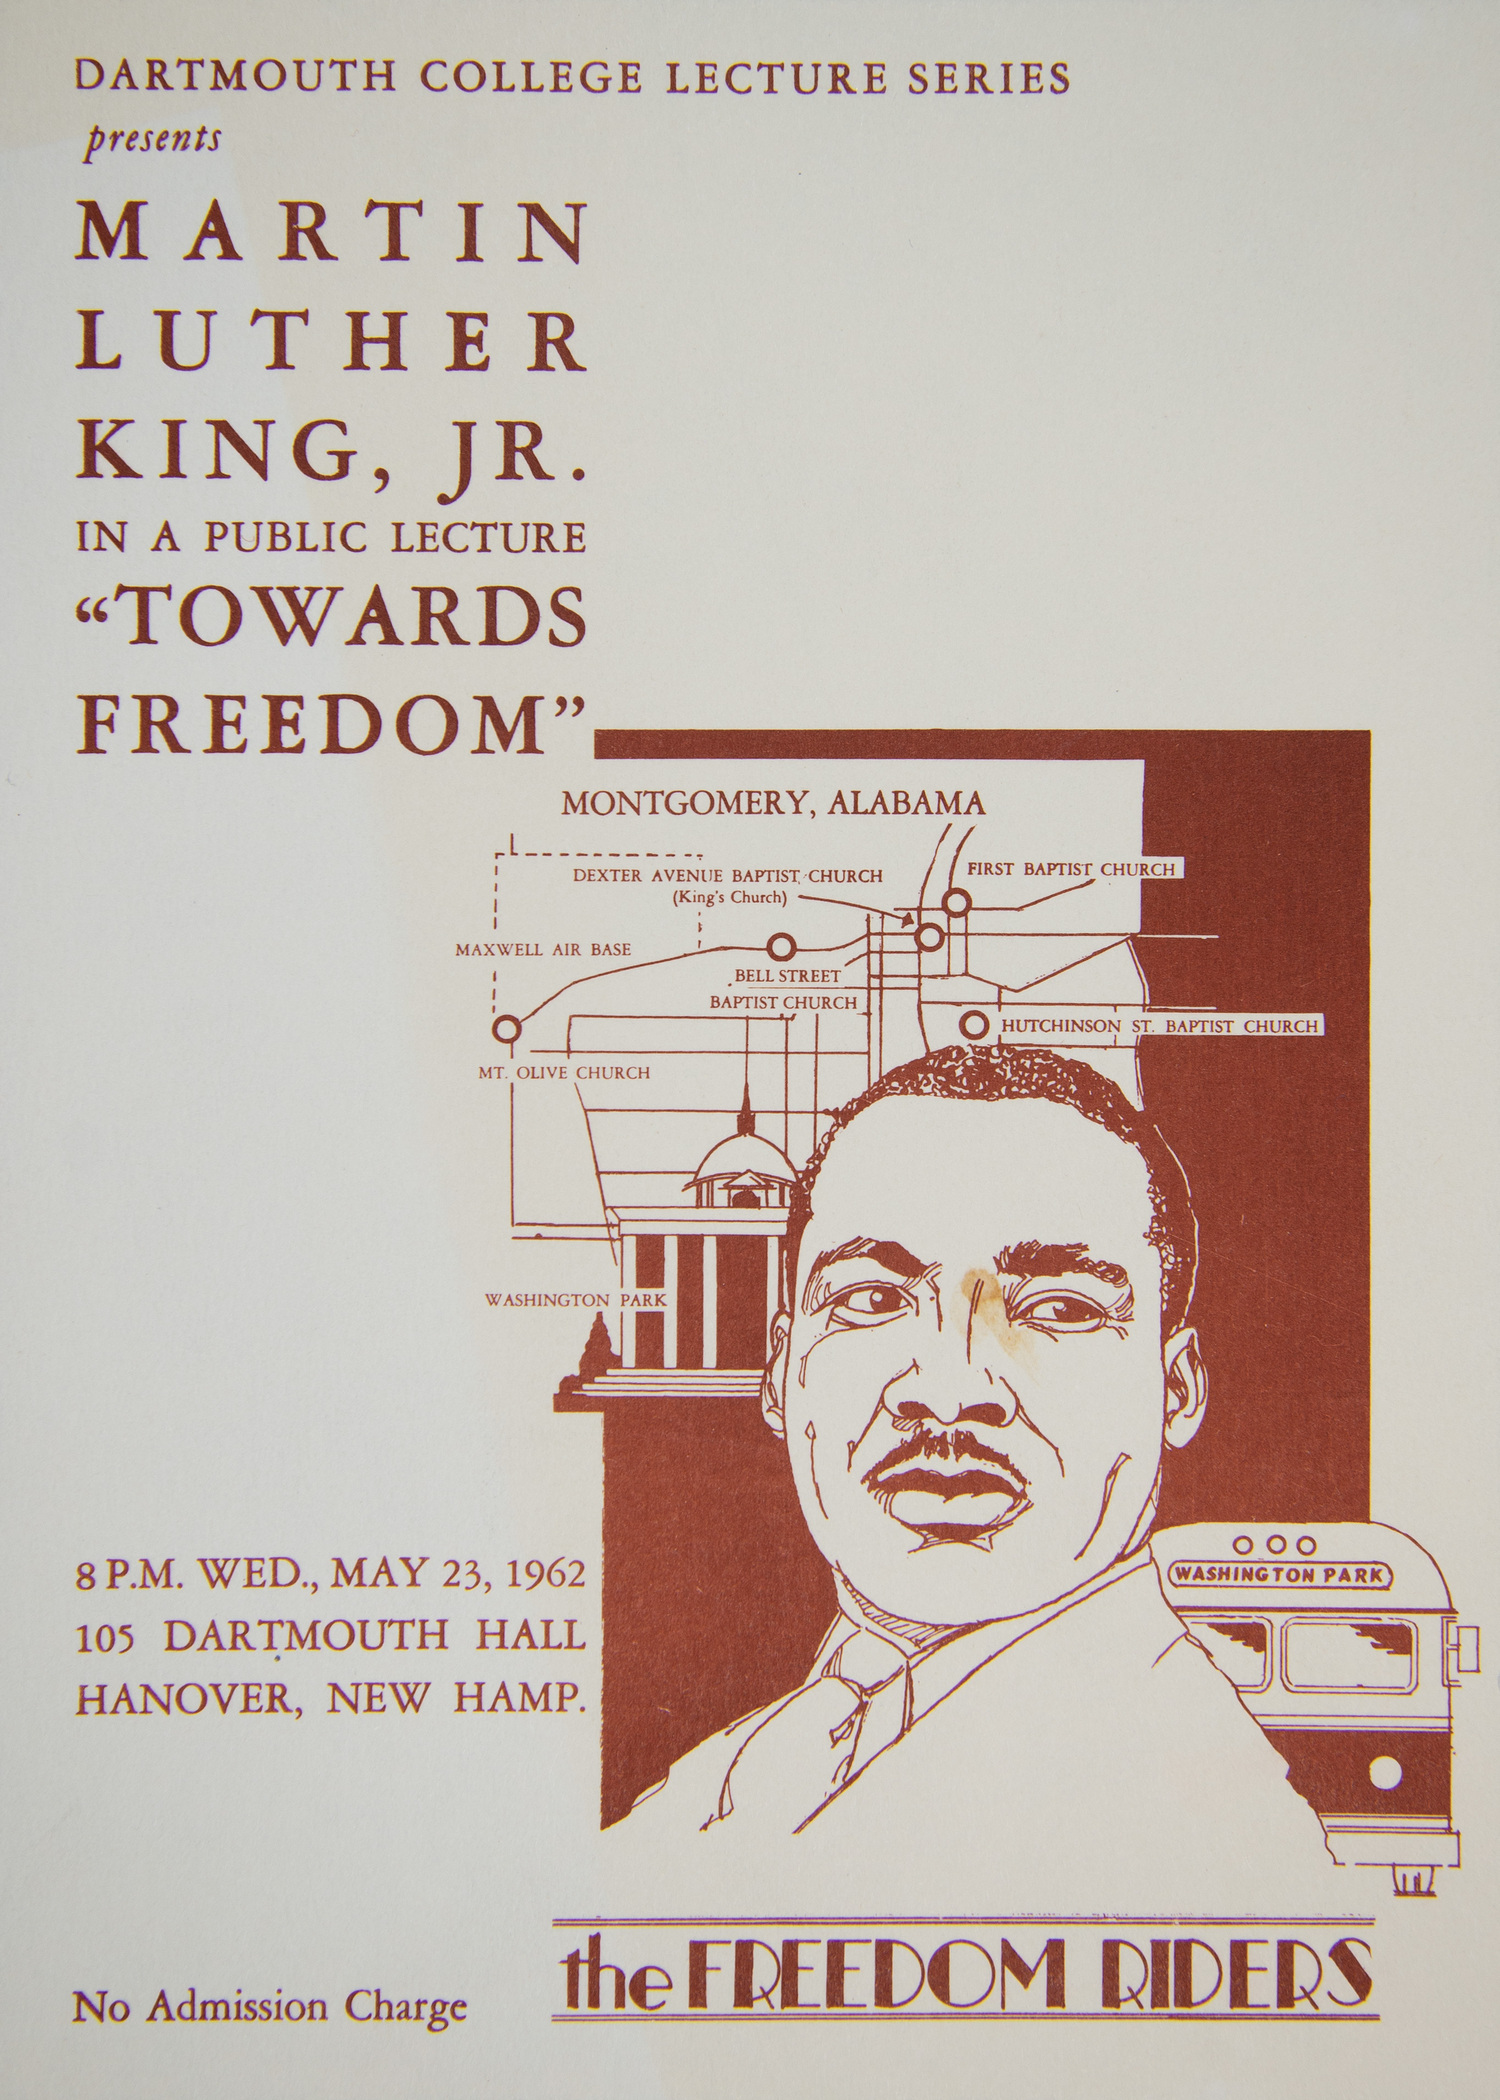 "This flyer announces a public lecture to be delivered by Civil Rights leader Dr. Martin Luther King, Jr. on May 23, 1962 in 105 Dartmouth Hall. King's lecture, which was part of Dartmouth President John Sloan Dickey's Great Issues Course lecture series, focused on the ""question of progress in race relations"" in the United States, and called upon community members in the North to take part in the Civil Rights Movement."